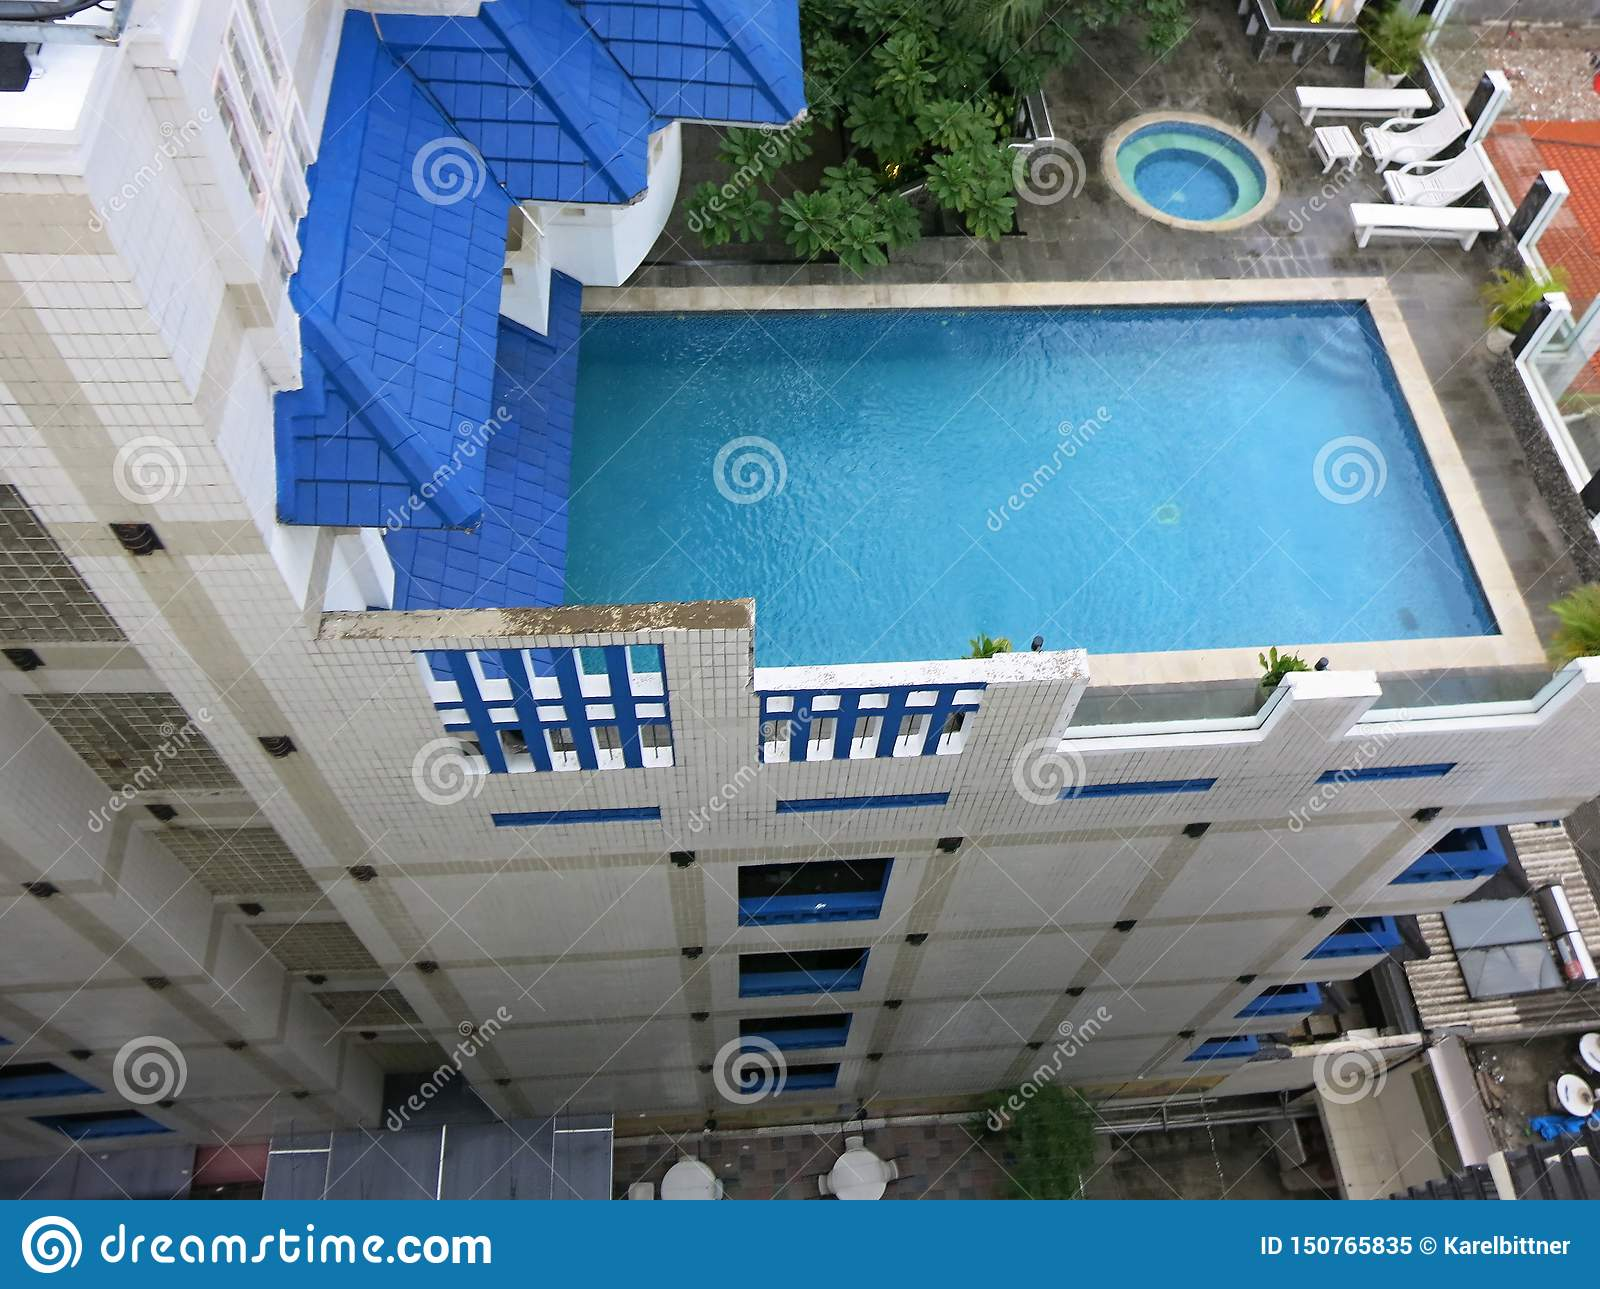 Luxury Rooftop Pool Swimming Pool On The Roof Of The Hotel Stock Image Image Of Park Pools 150765835